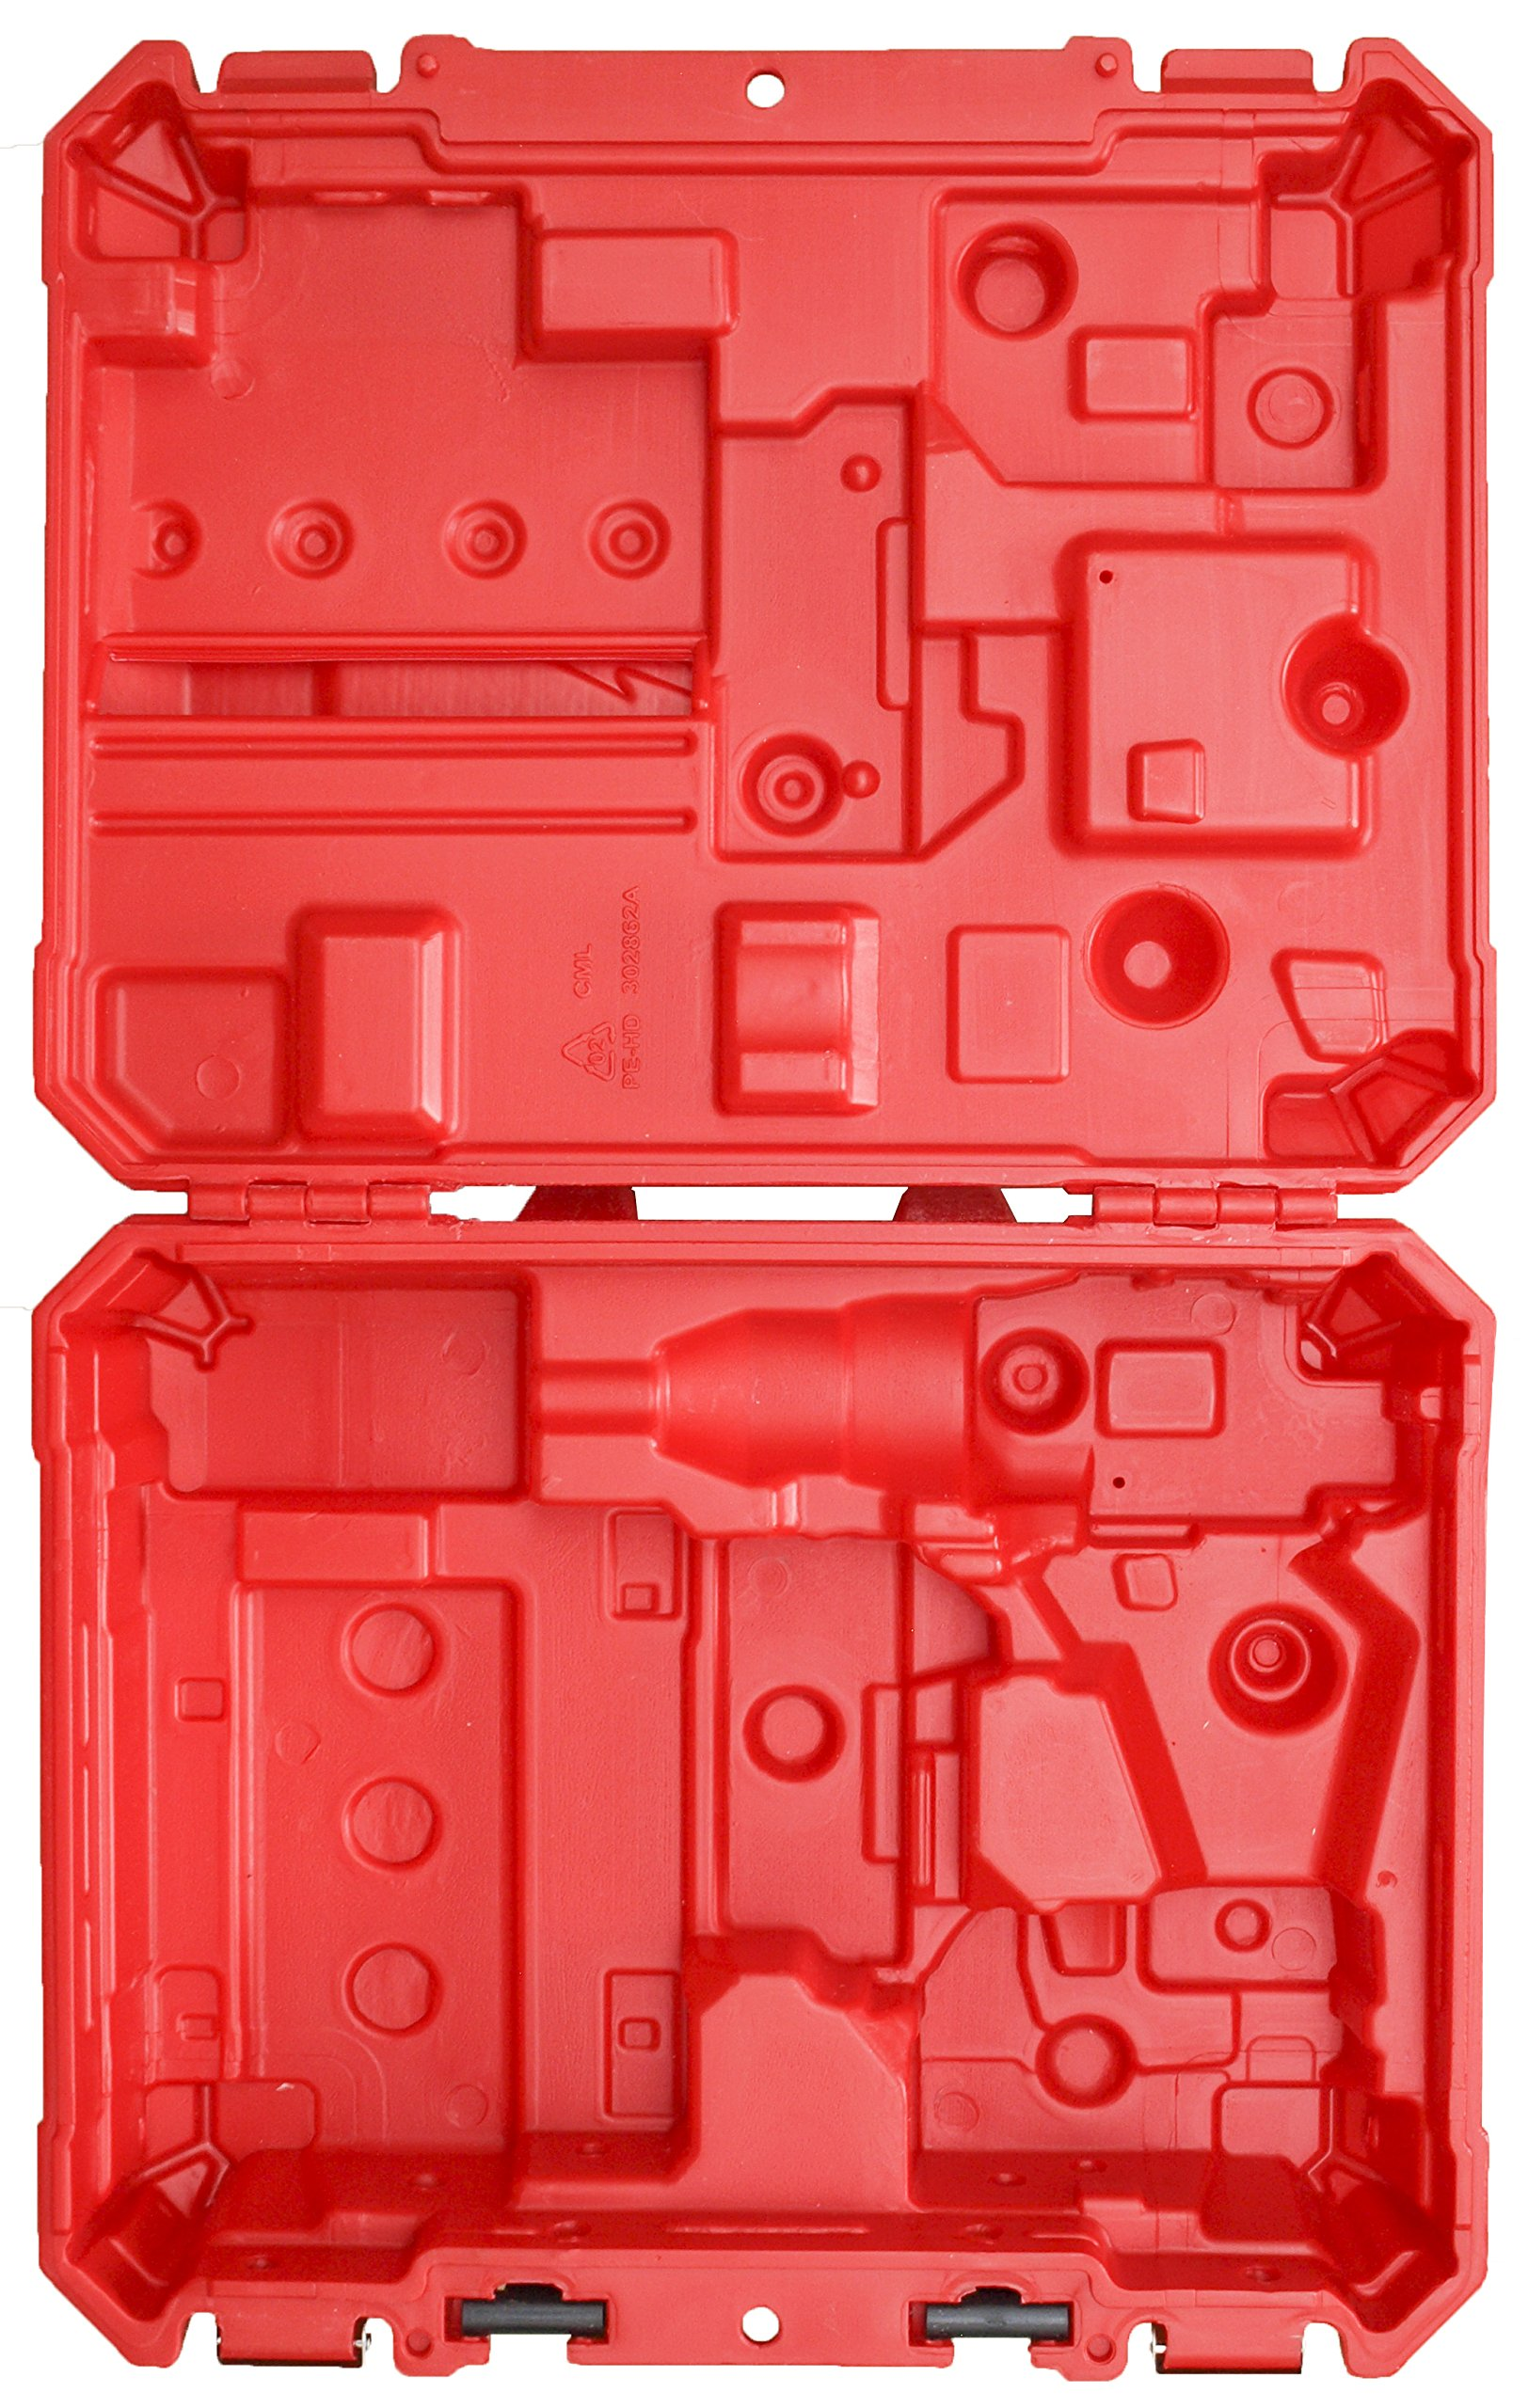 Milwaukee Tool Case Only - Fits 2606-20 / 2607-20 / 2606-22CT / 2607-22CT M18 Drill Driver / Hammer Drill Driver (No Tools / Accessories Included)